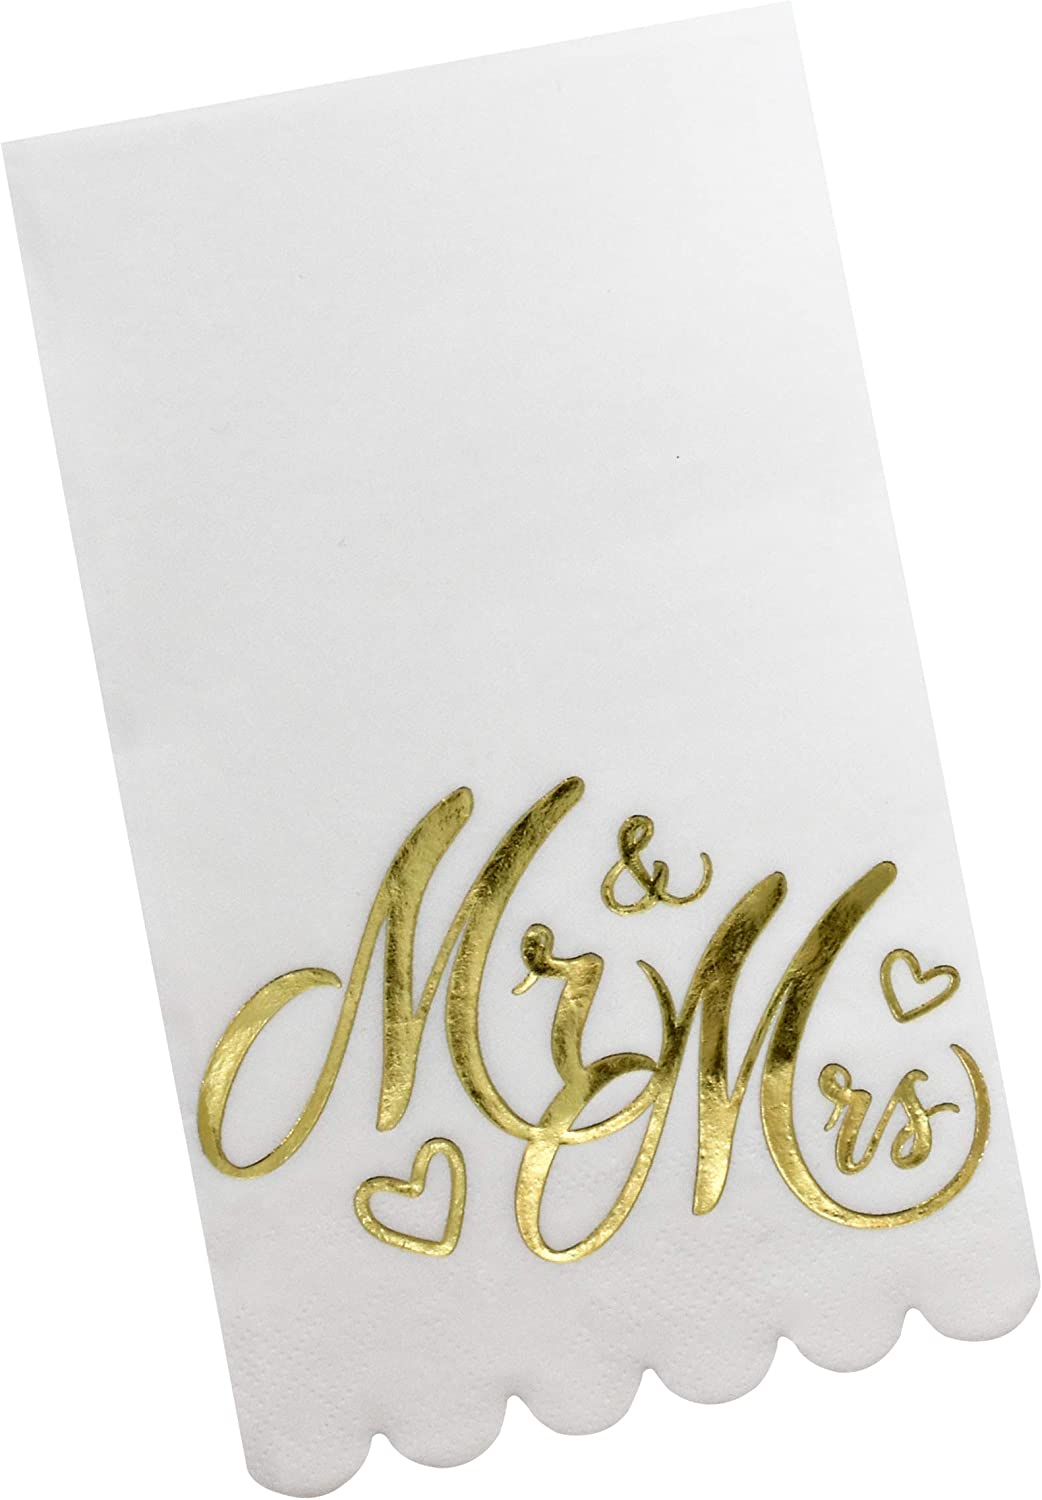 100 Mr and Mrs Guest Napkins Disposable Paper Pack Elegant Dinner Hand Napkin with Scalloped Edge and Gold Foil For Bathroom Wedding Anniversary Birthday Baby Shower Decorative Towels By Gift Boutique